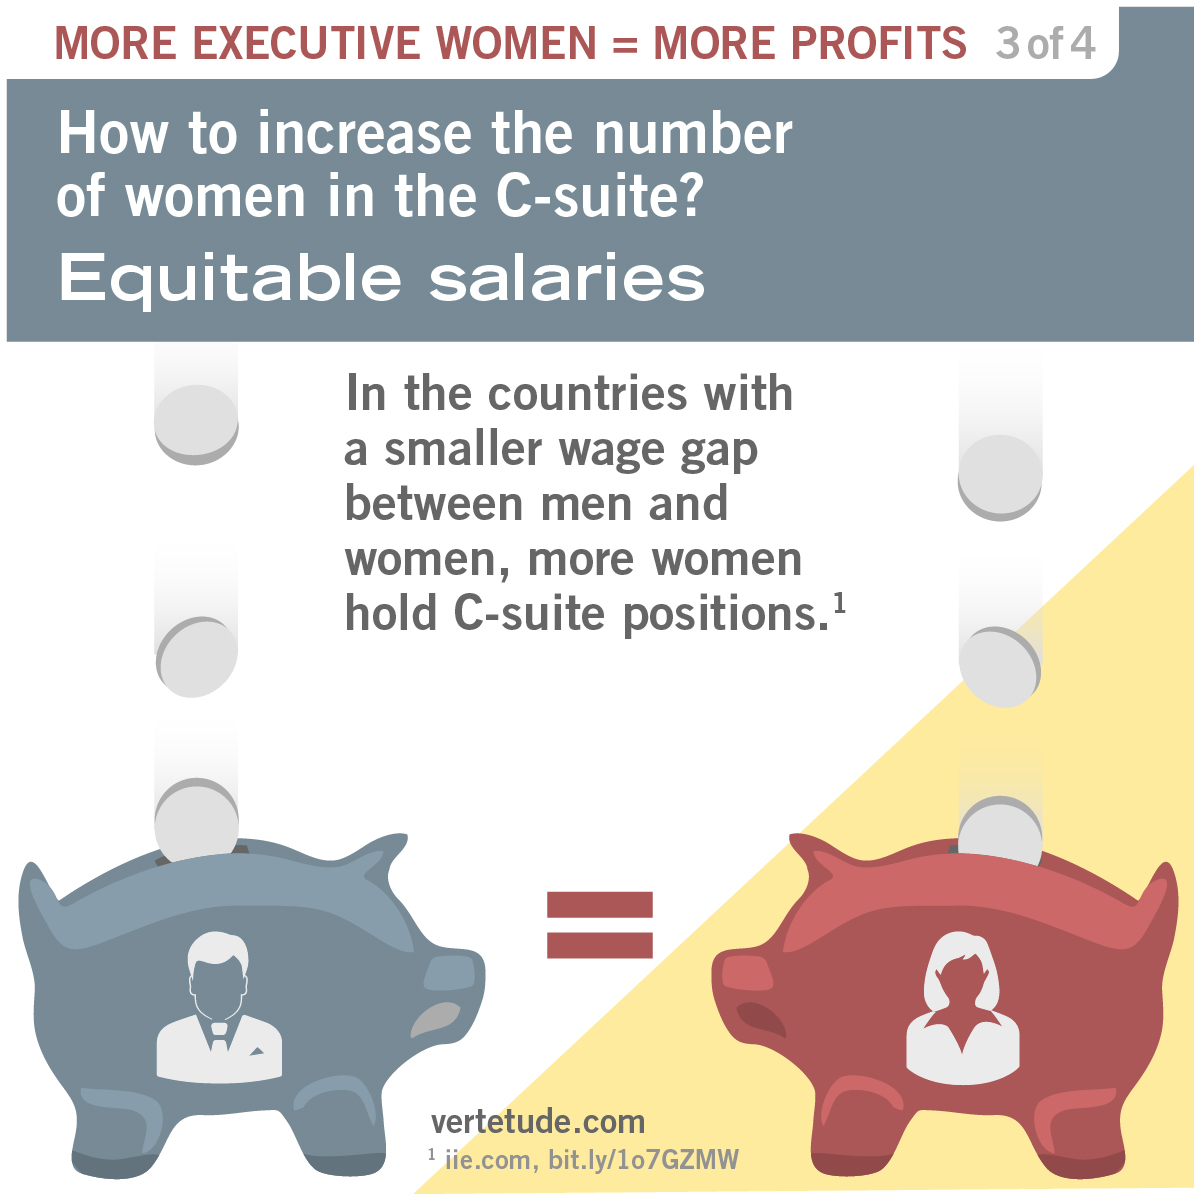 Infographic on equitable salaries